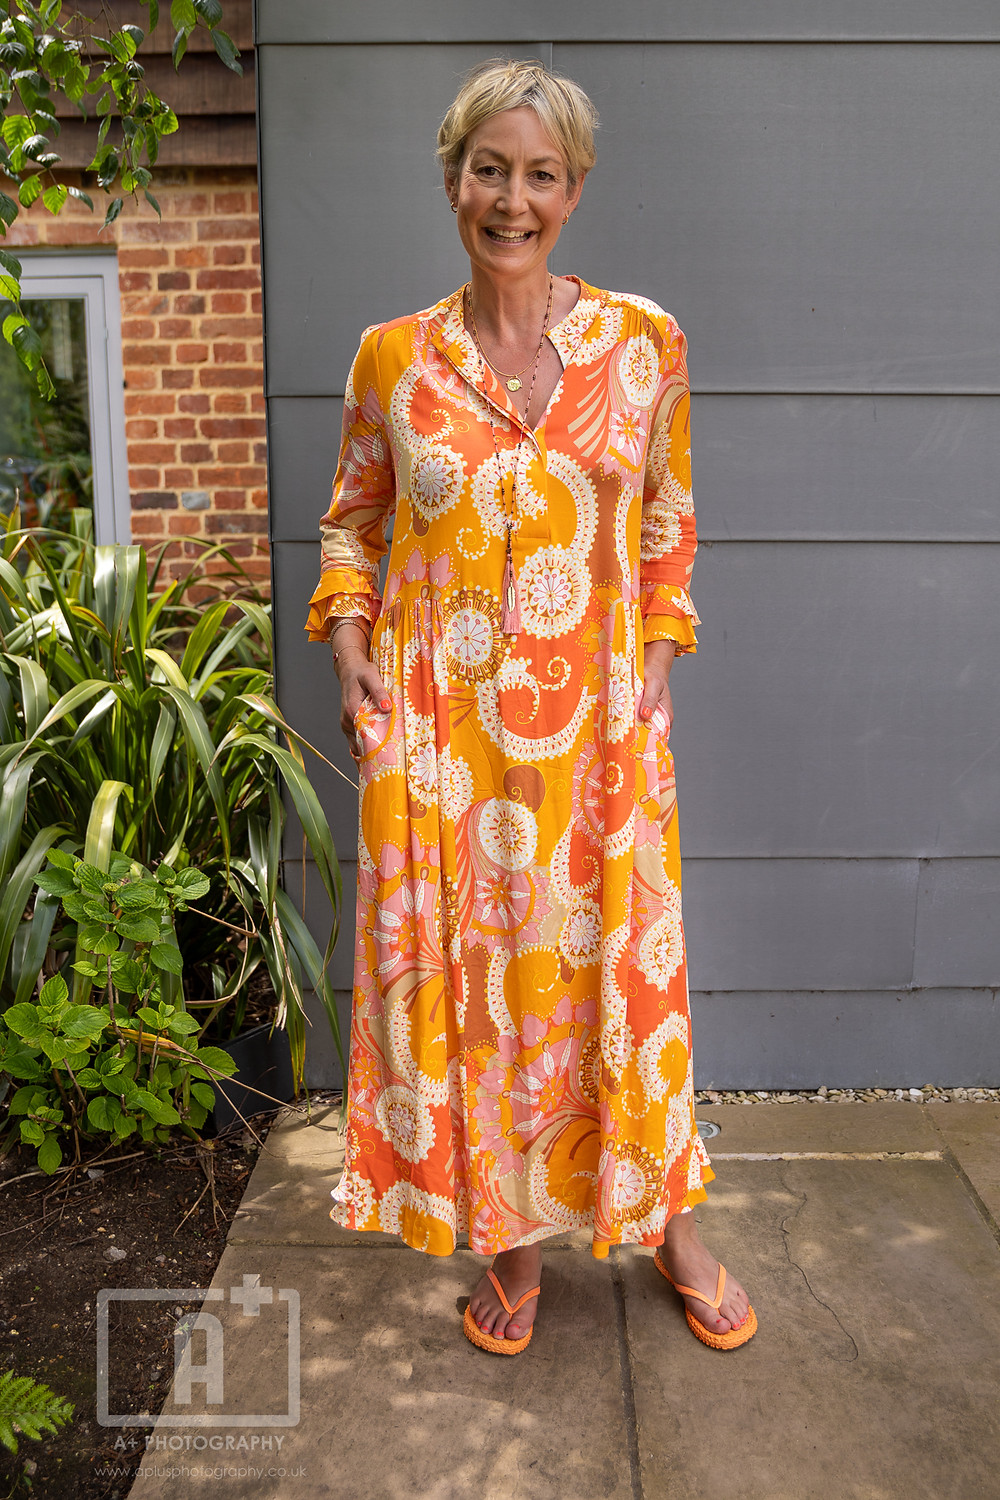 A woman standing in a long flowery orangey yellow dress in front of a grey wall.